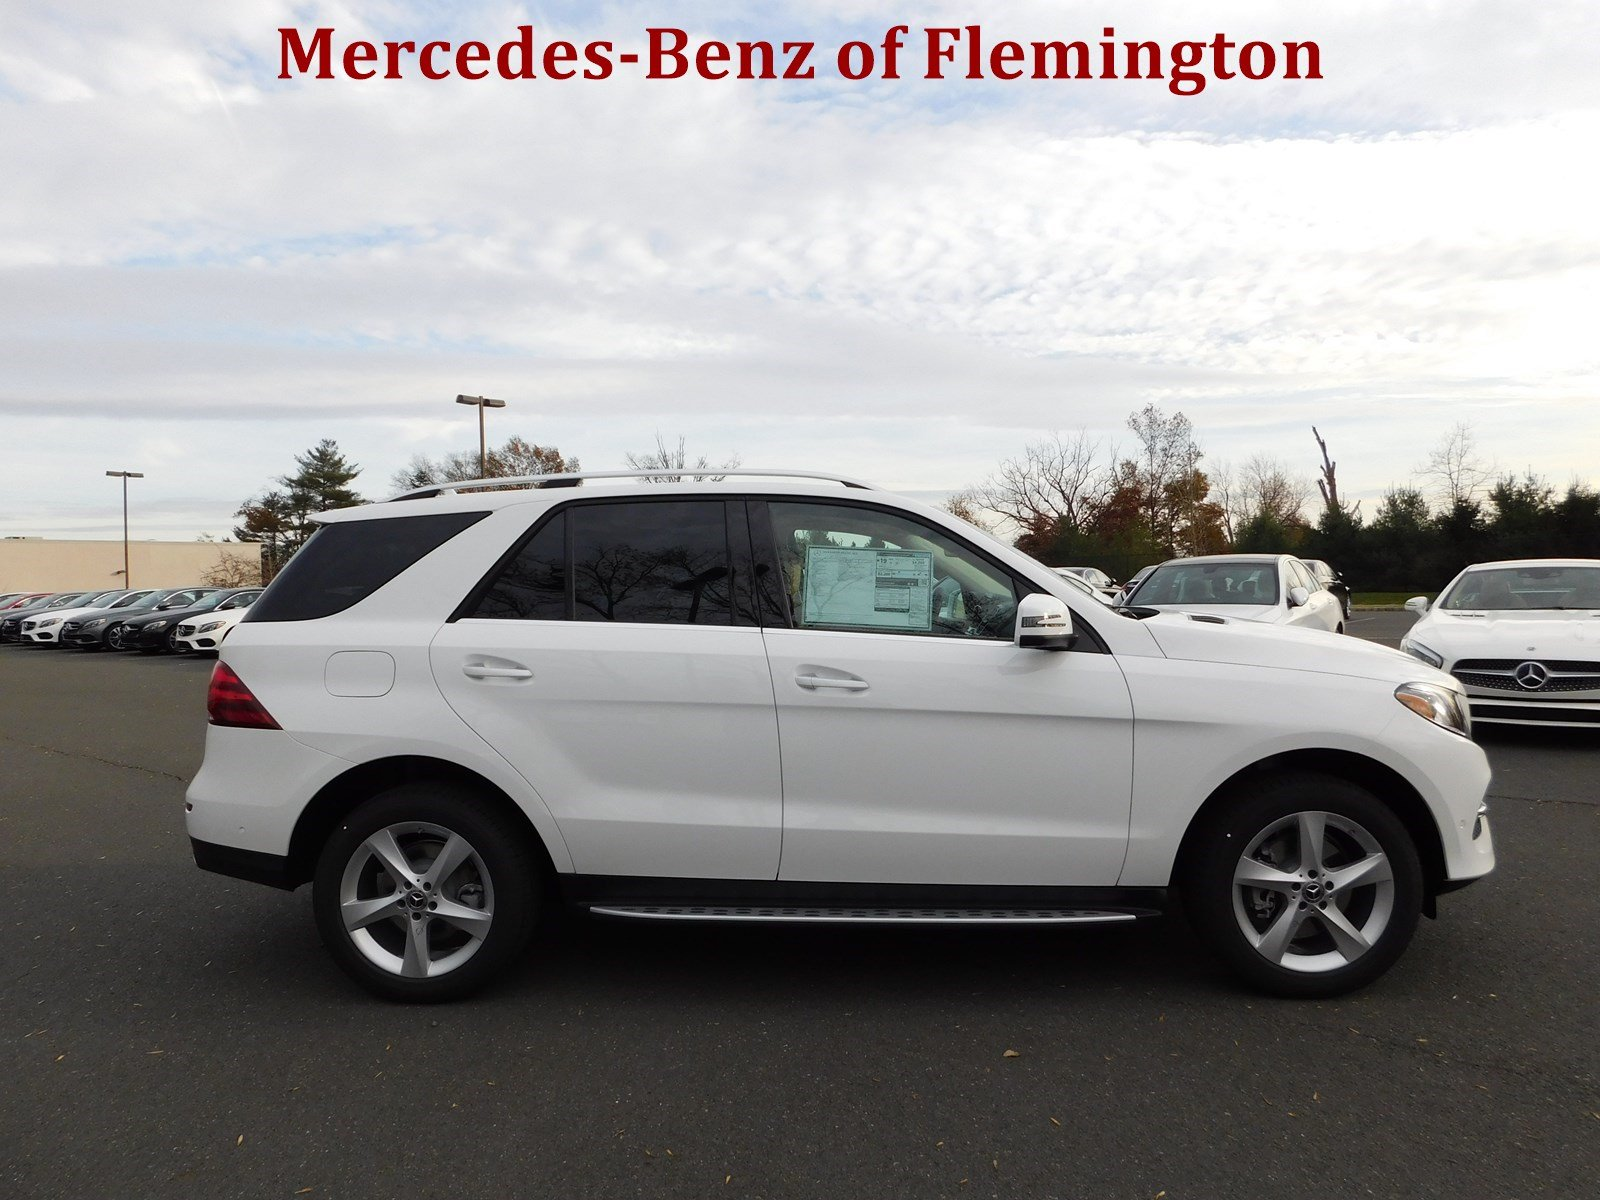 New 2018 mercedes benz gle gle 350 suv in flemington for Mercedes benz financial payment address